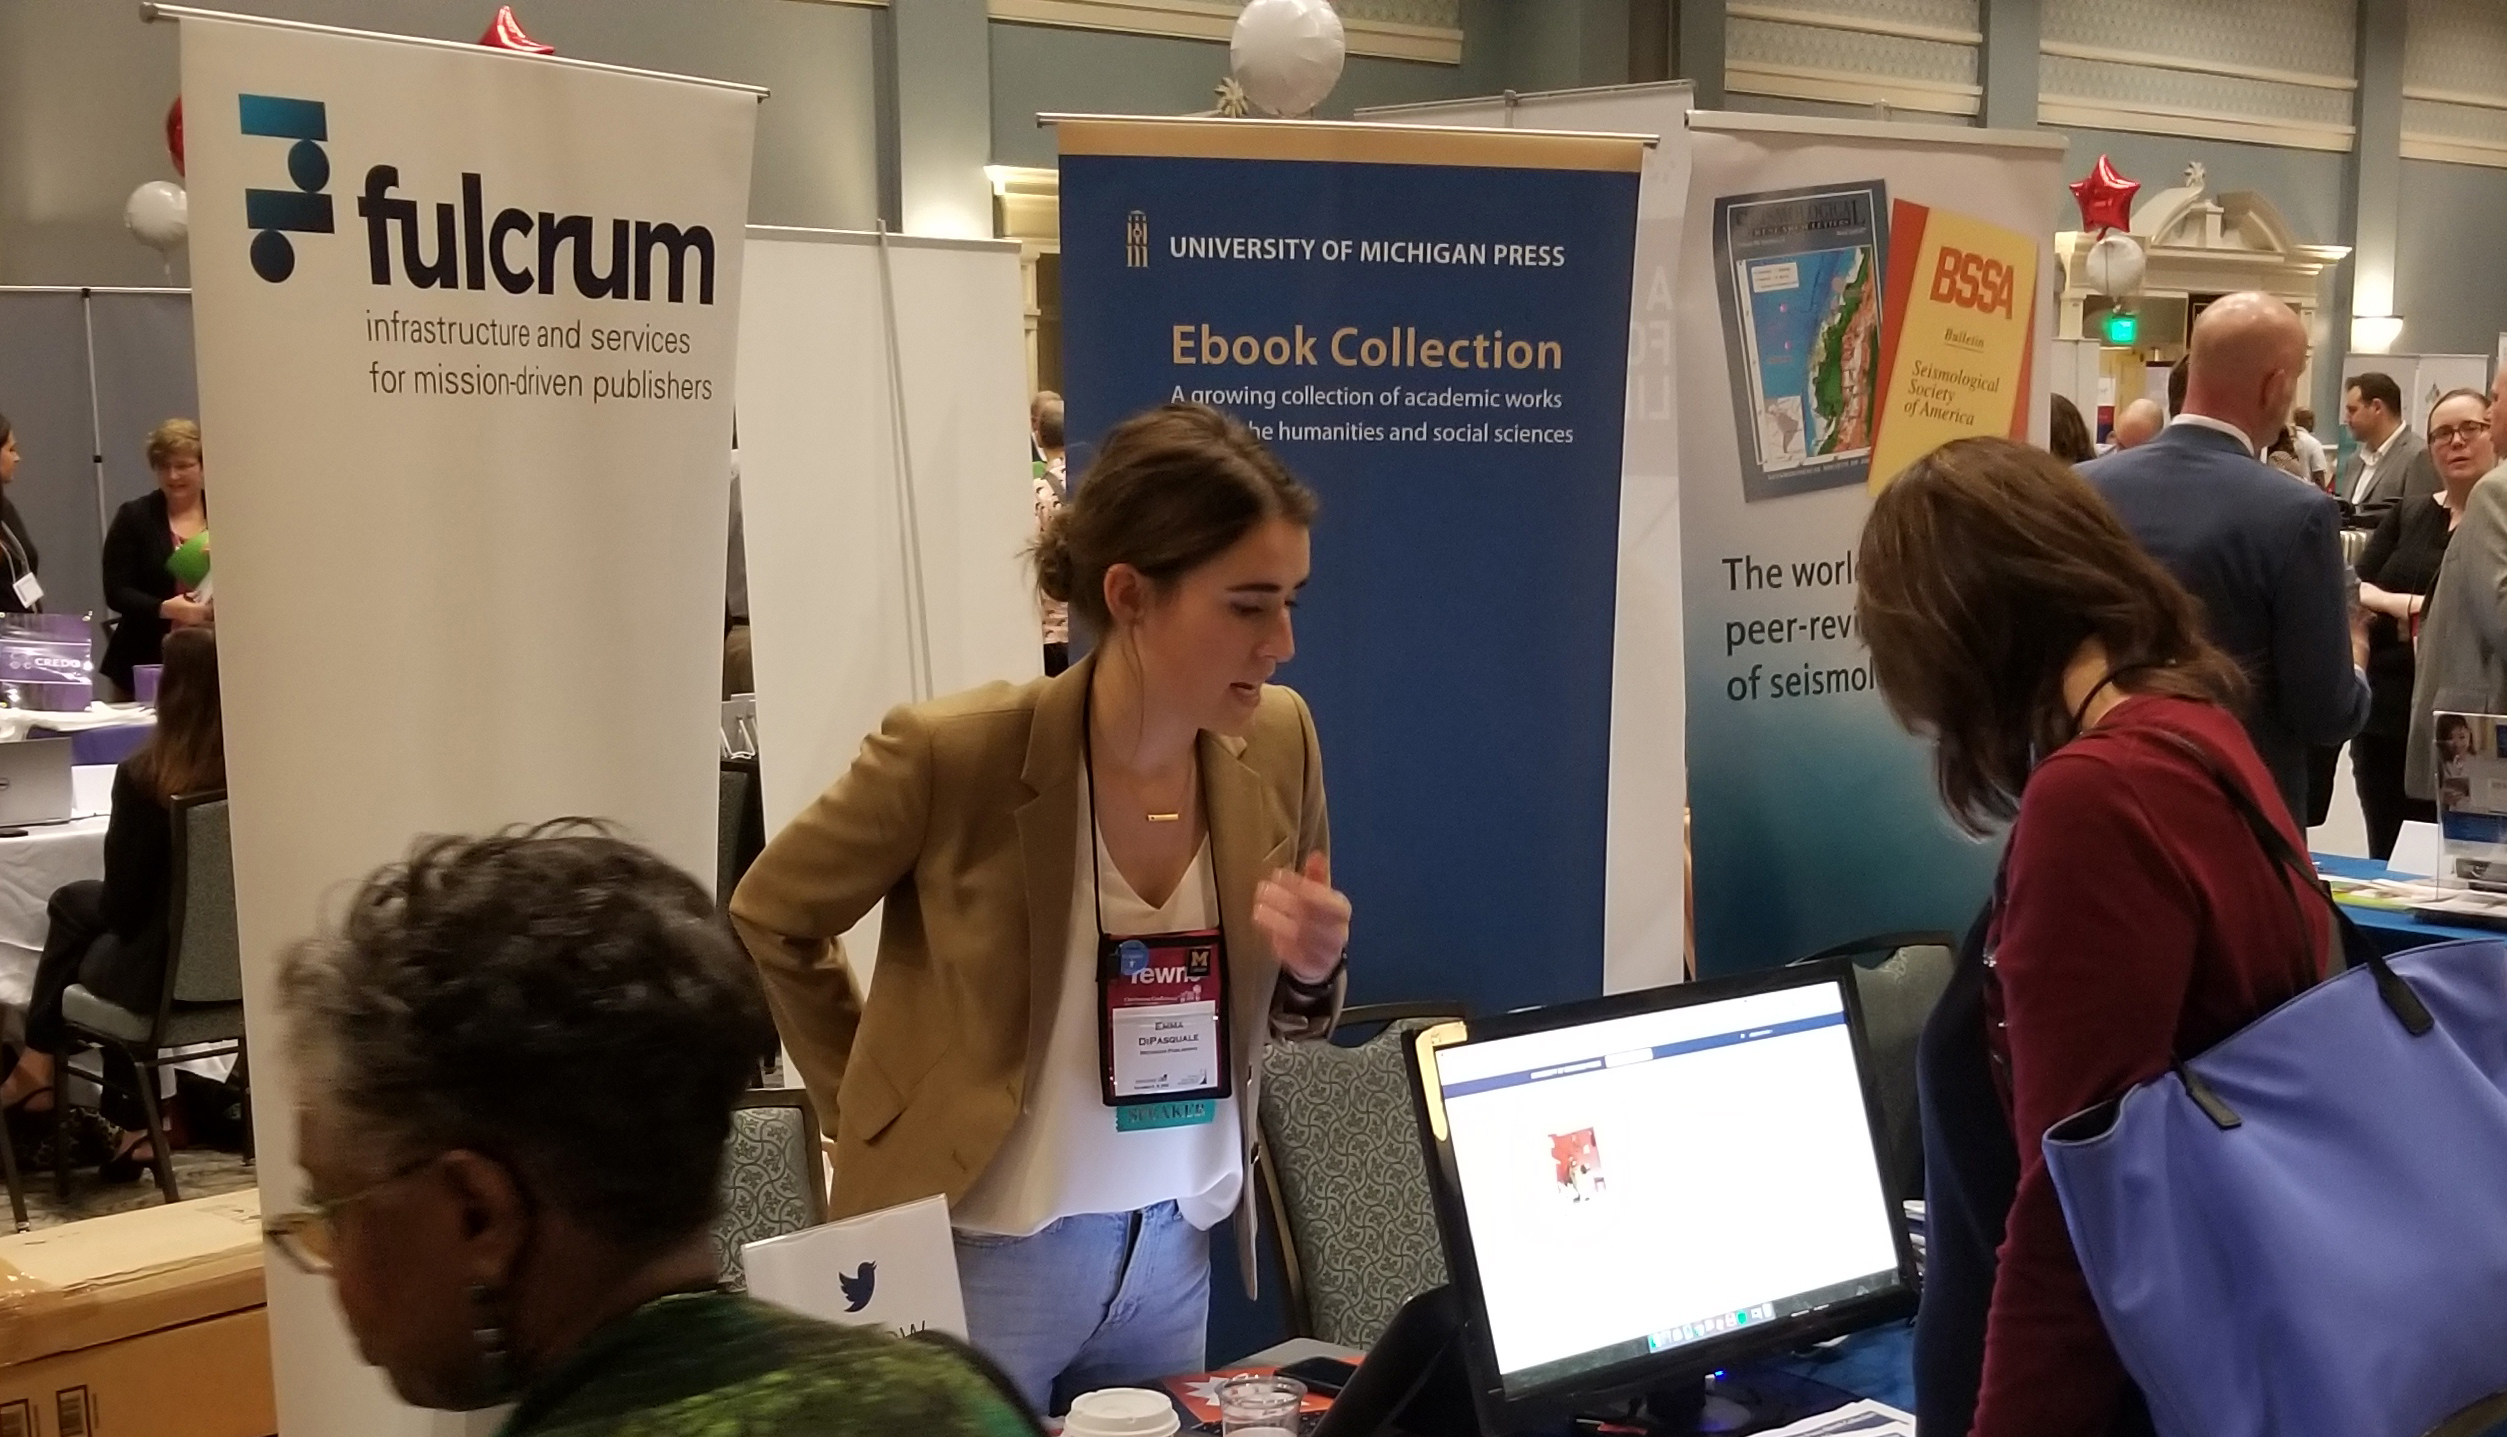 A photograph of a young woman showing a digital ebook from the University of Michigan Press Ebook collection to a Charleston conference attendee at the Michigan Publishing display booth.